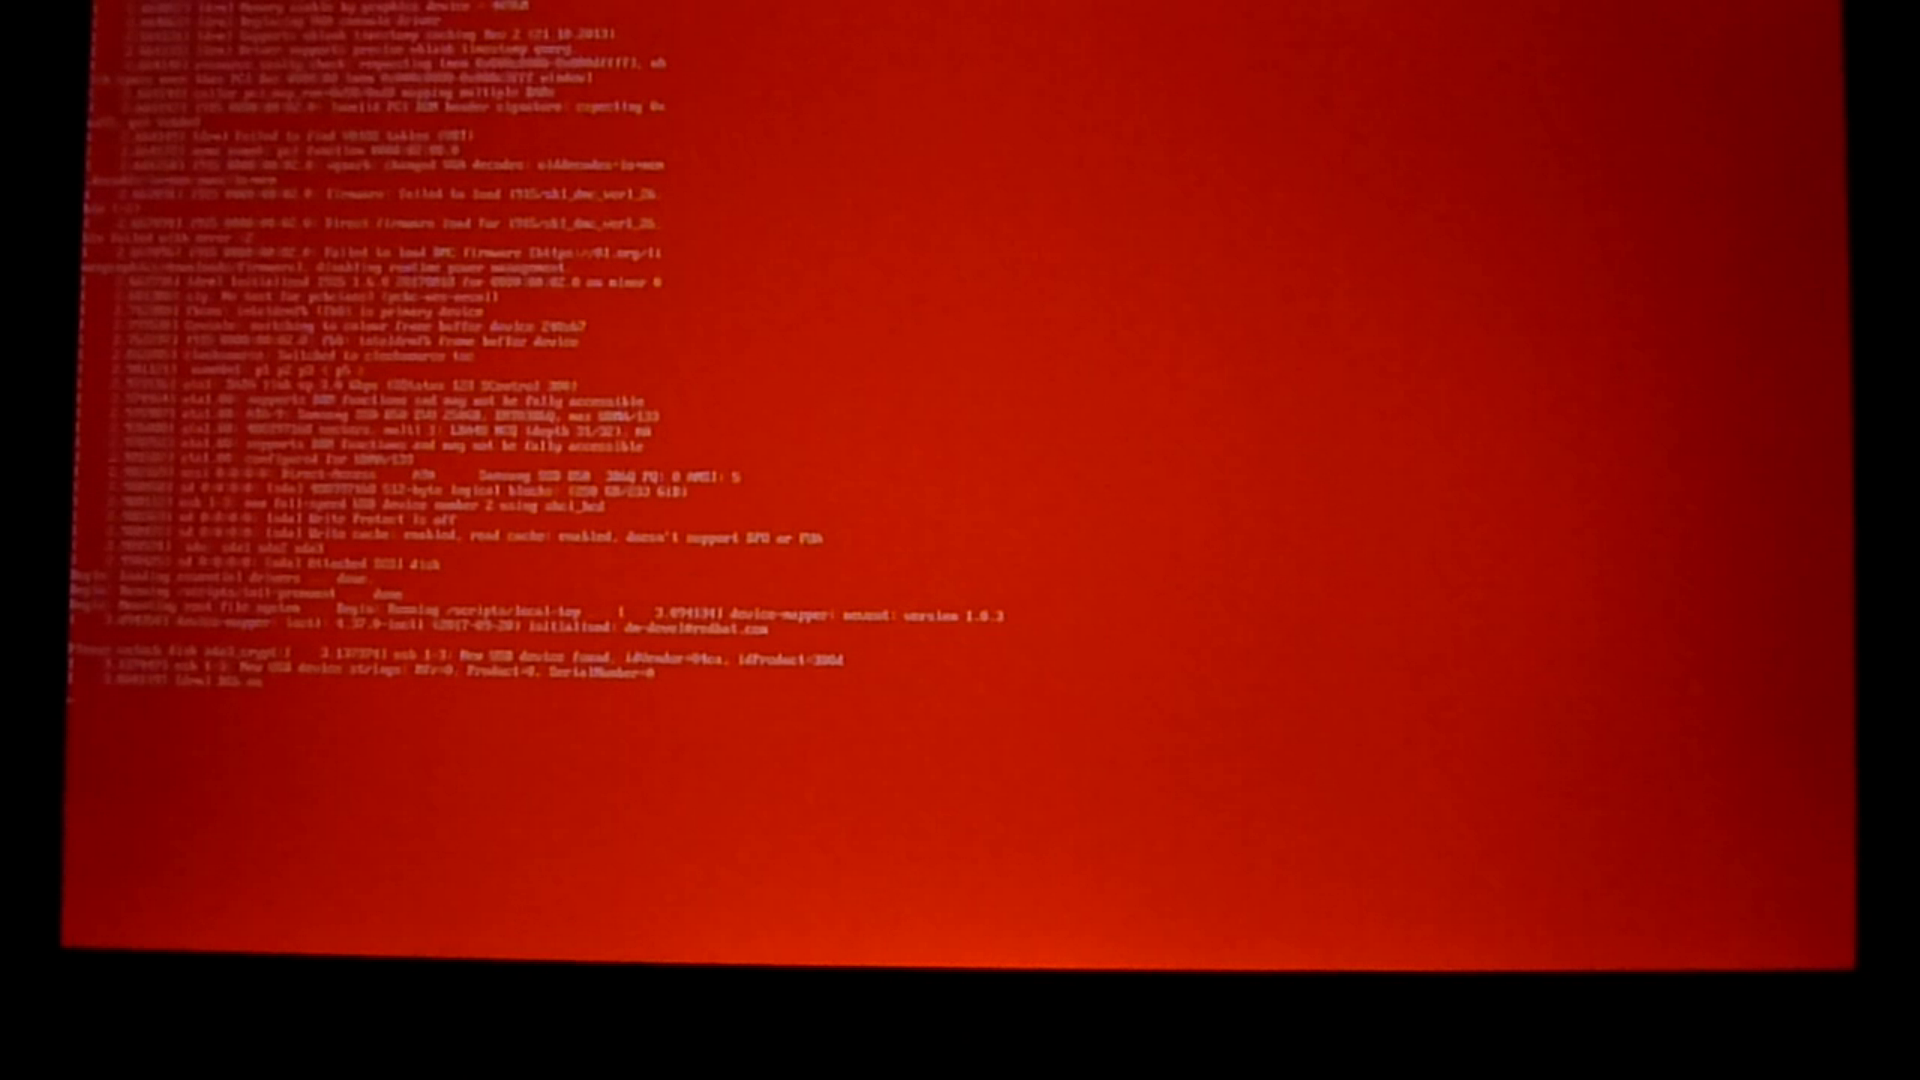 Insecure boot mode